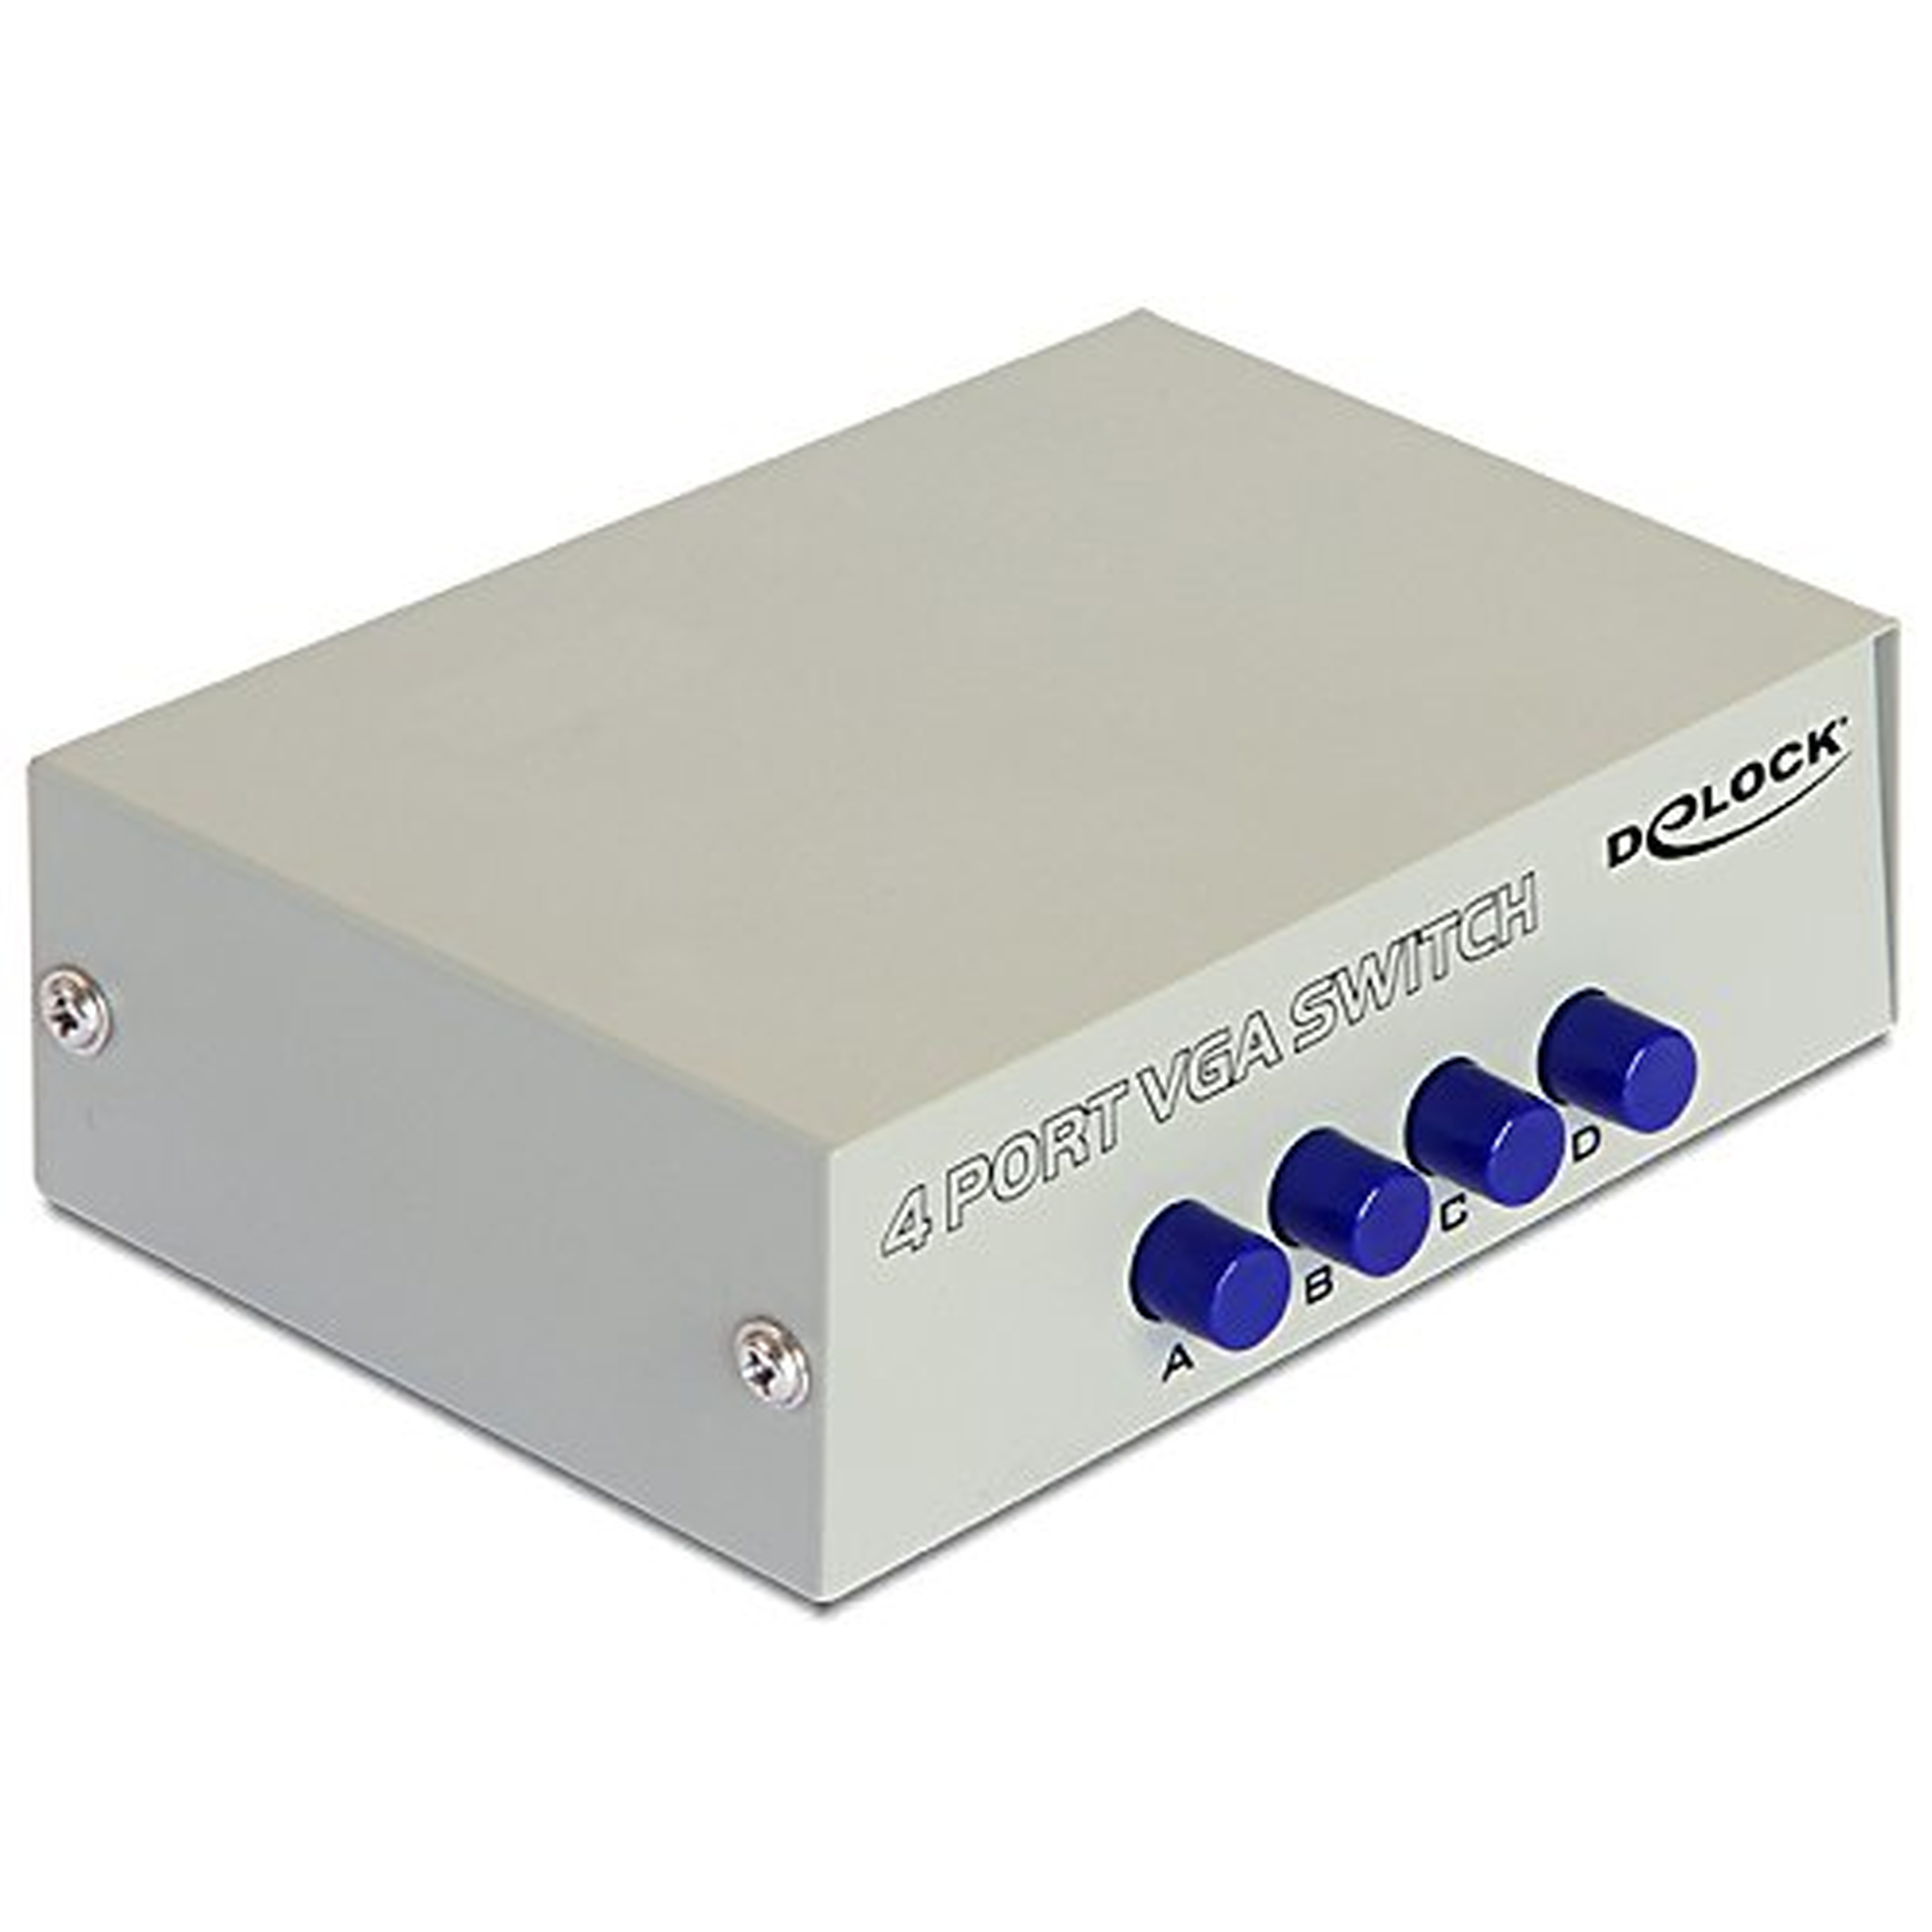 DeLOCK Switch 4-port VGA manuell bidirektional